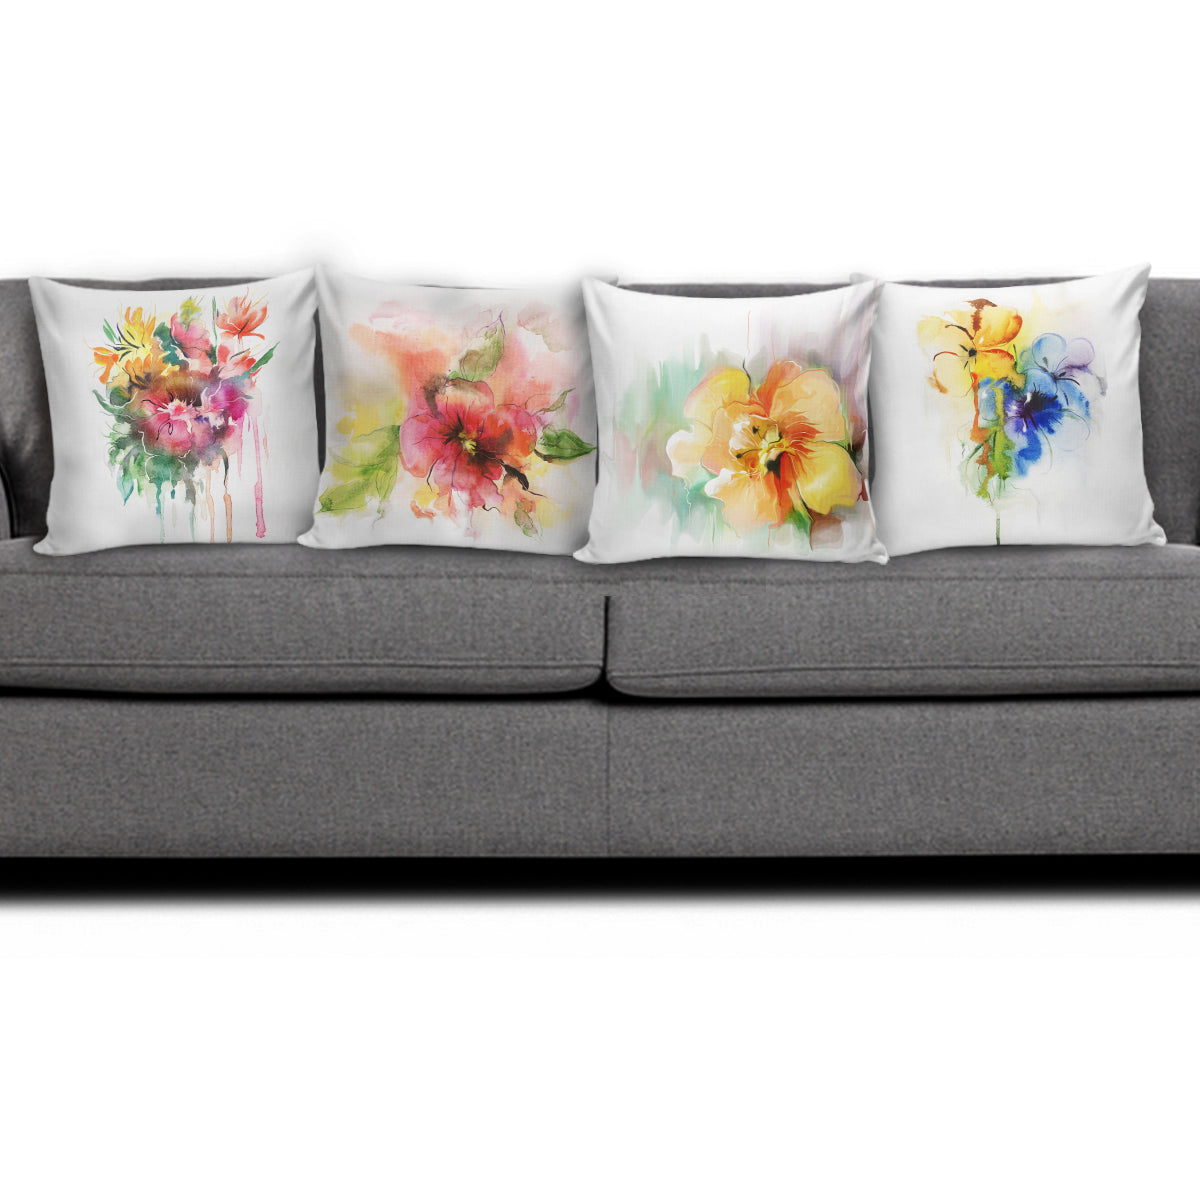 Watercolor Flower Pillow Covers - Hello Moa